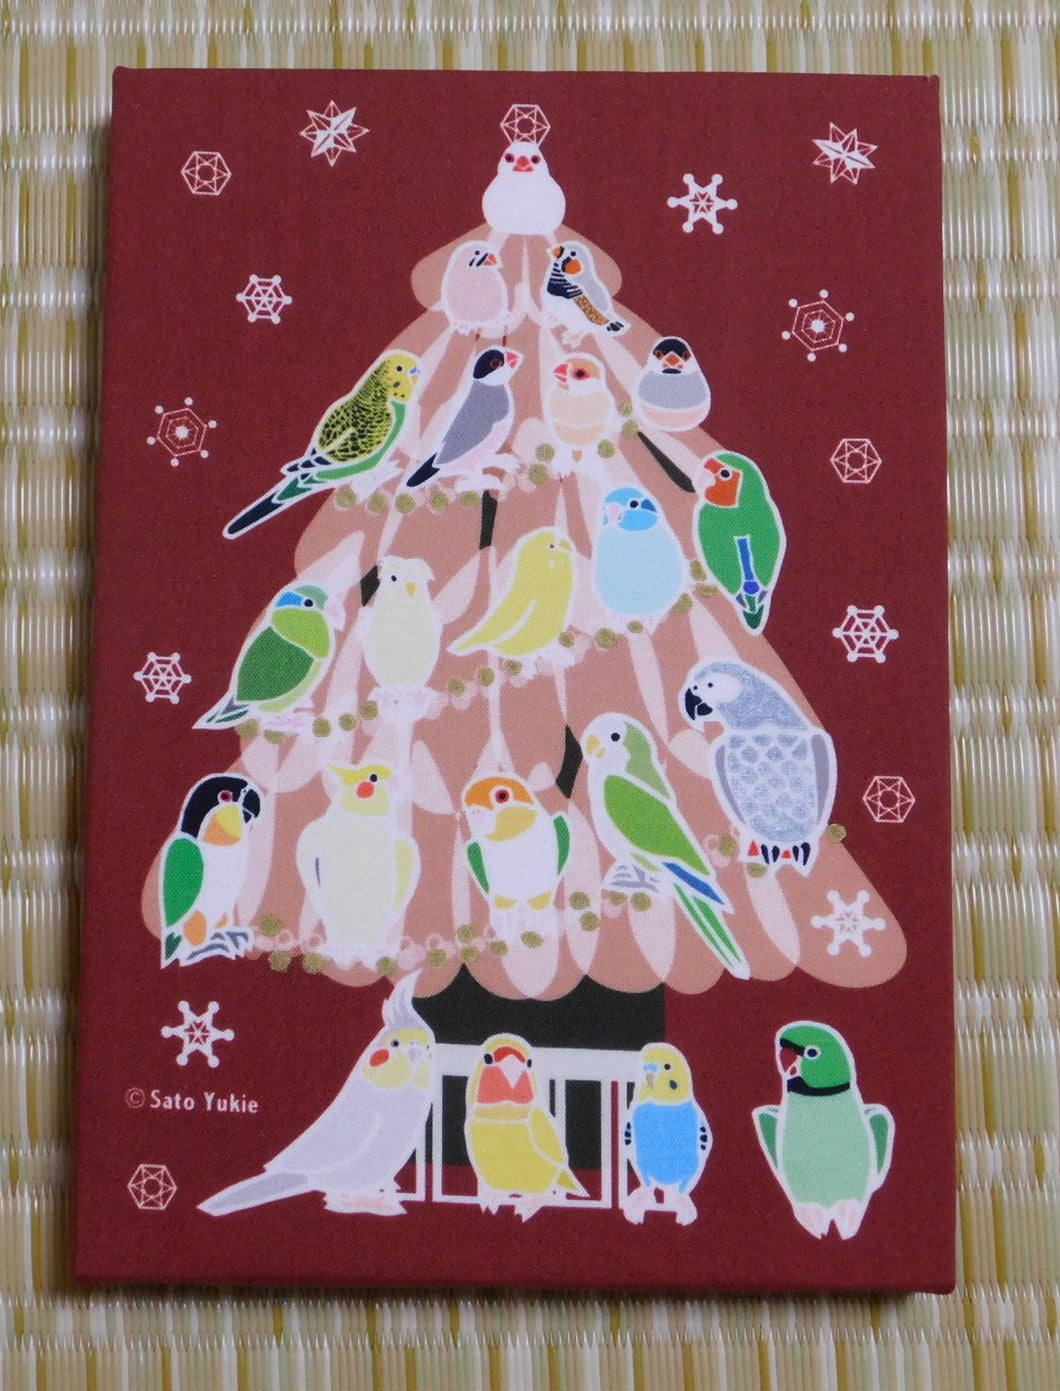 Bird Christmas Tree Fabric Art Panel Java Sparrow Zebra Finch Budgerigar Lovebird Pacific Parrotlet Black-Headed Caique White-Bellied Caique Monk Parakeet African Gray Parrot Cockatiel Indian Ringneck Parakeet